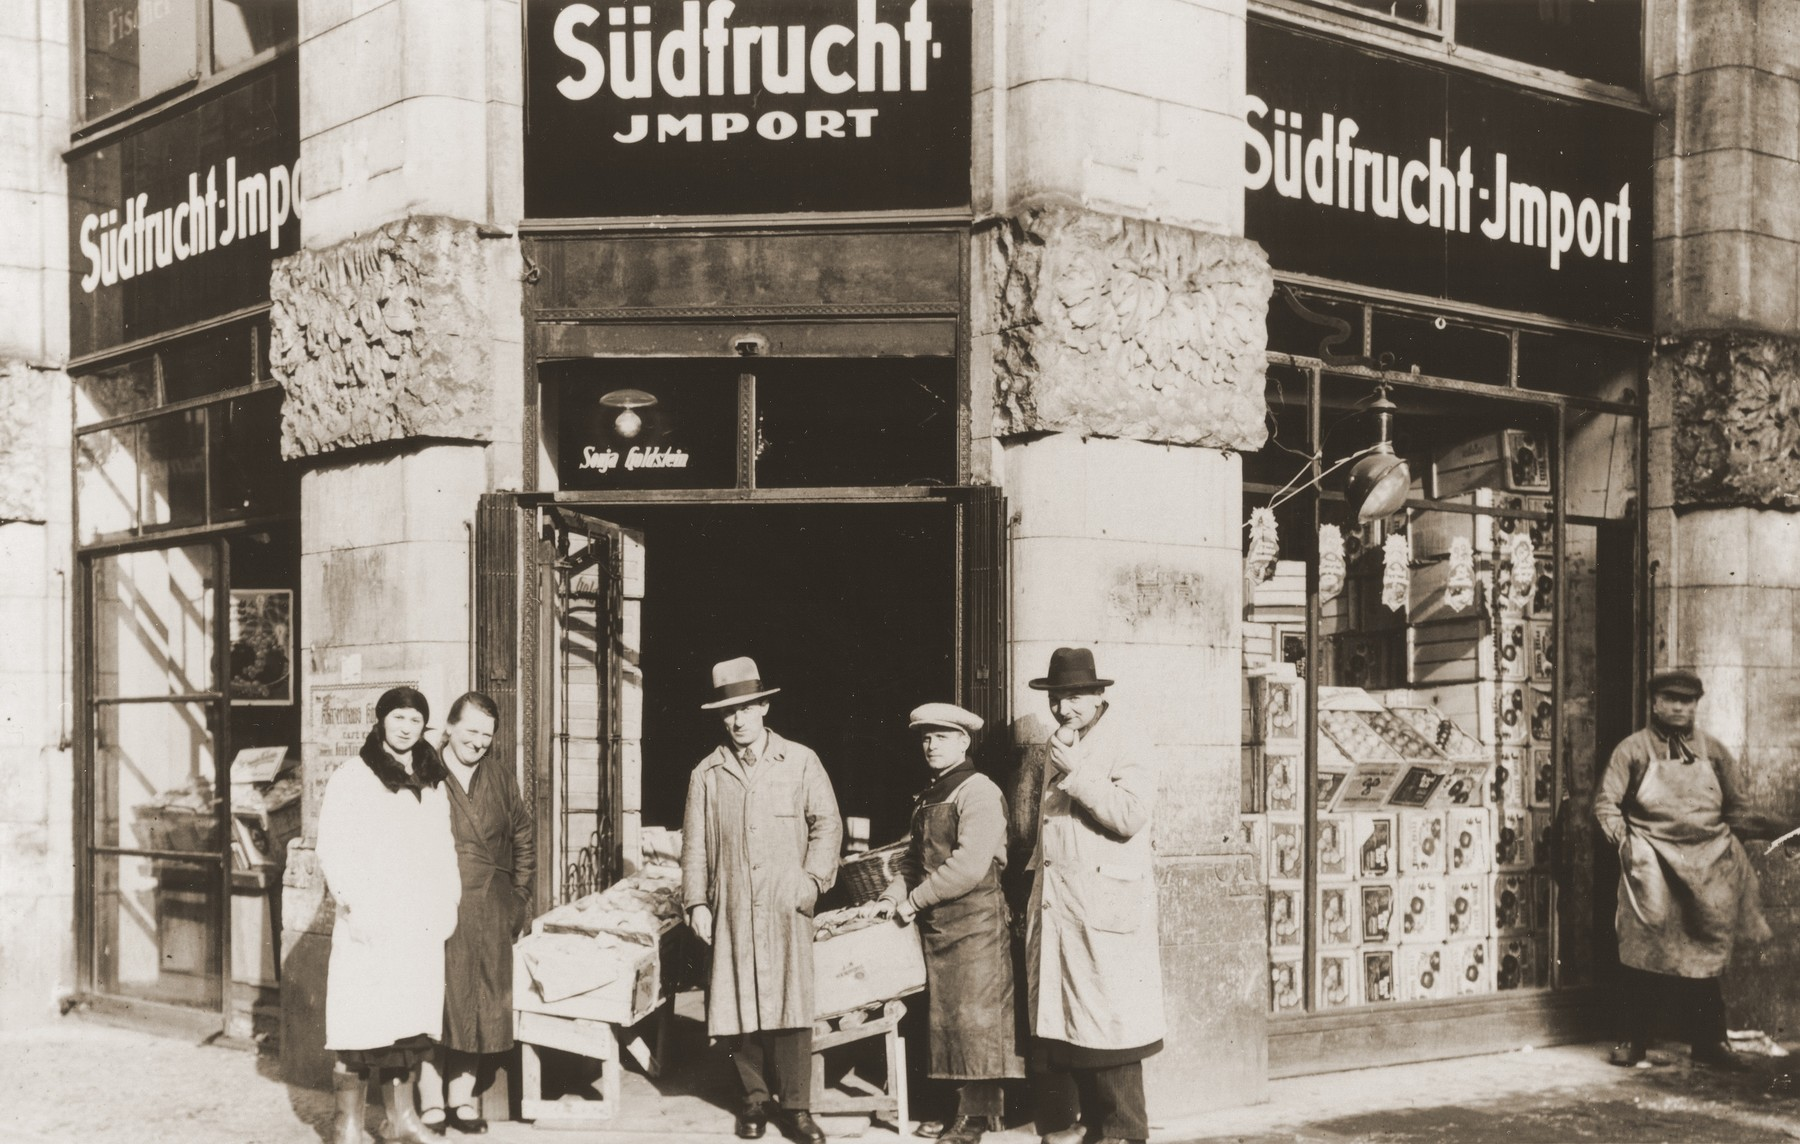 Bernhard and Sonja Schadur Goldstein with others in front of their wholesale fruit business in Berlin.  Bernhard is pictured in the center and Sonja, at the left.  Sonja was the sister of Michel Schadur, whom he set up in the fruit business in Berlin in the early 1930s.  Sonja married a German-Jew, Bernhard Goldstein and had one daughter while living in Berlin.  After Kristallnacht Bernhard was imprisoned briefly in Sachsenhausen.  Upon his release the family fled to Antwerp.  In March 1940 they secured American visas and sailed to the U.S.